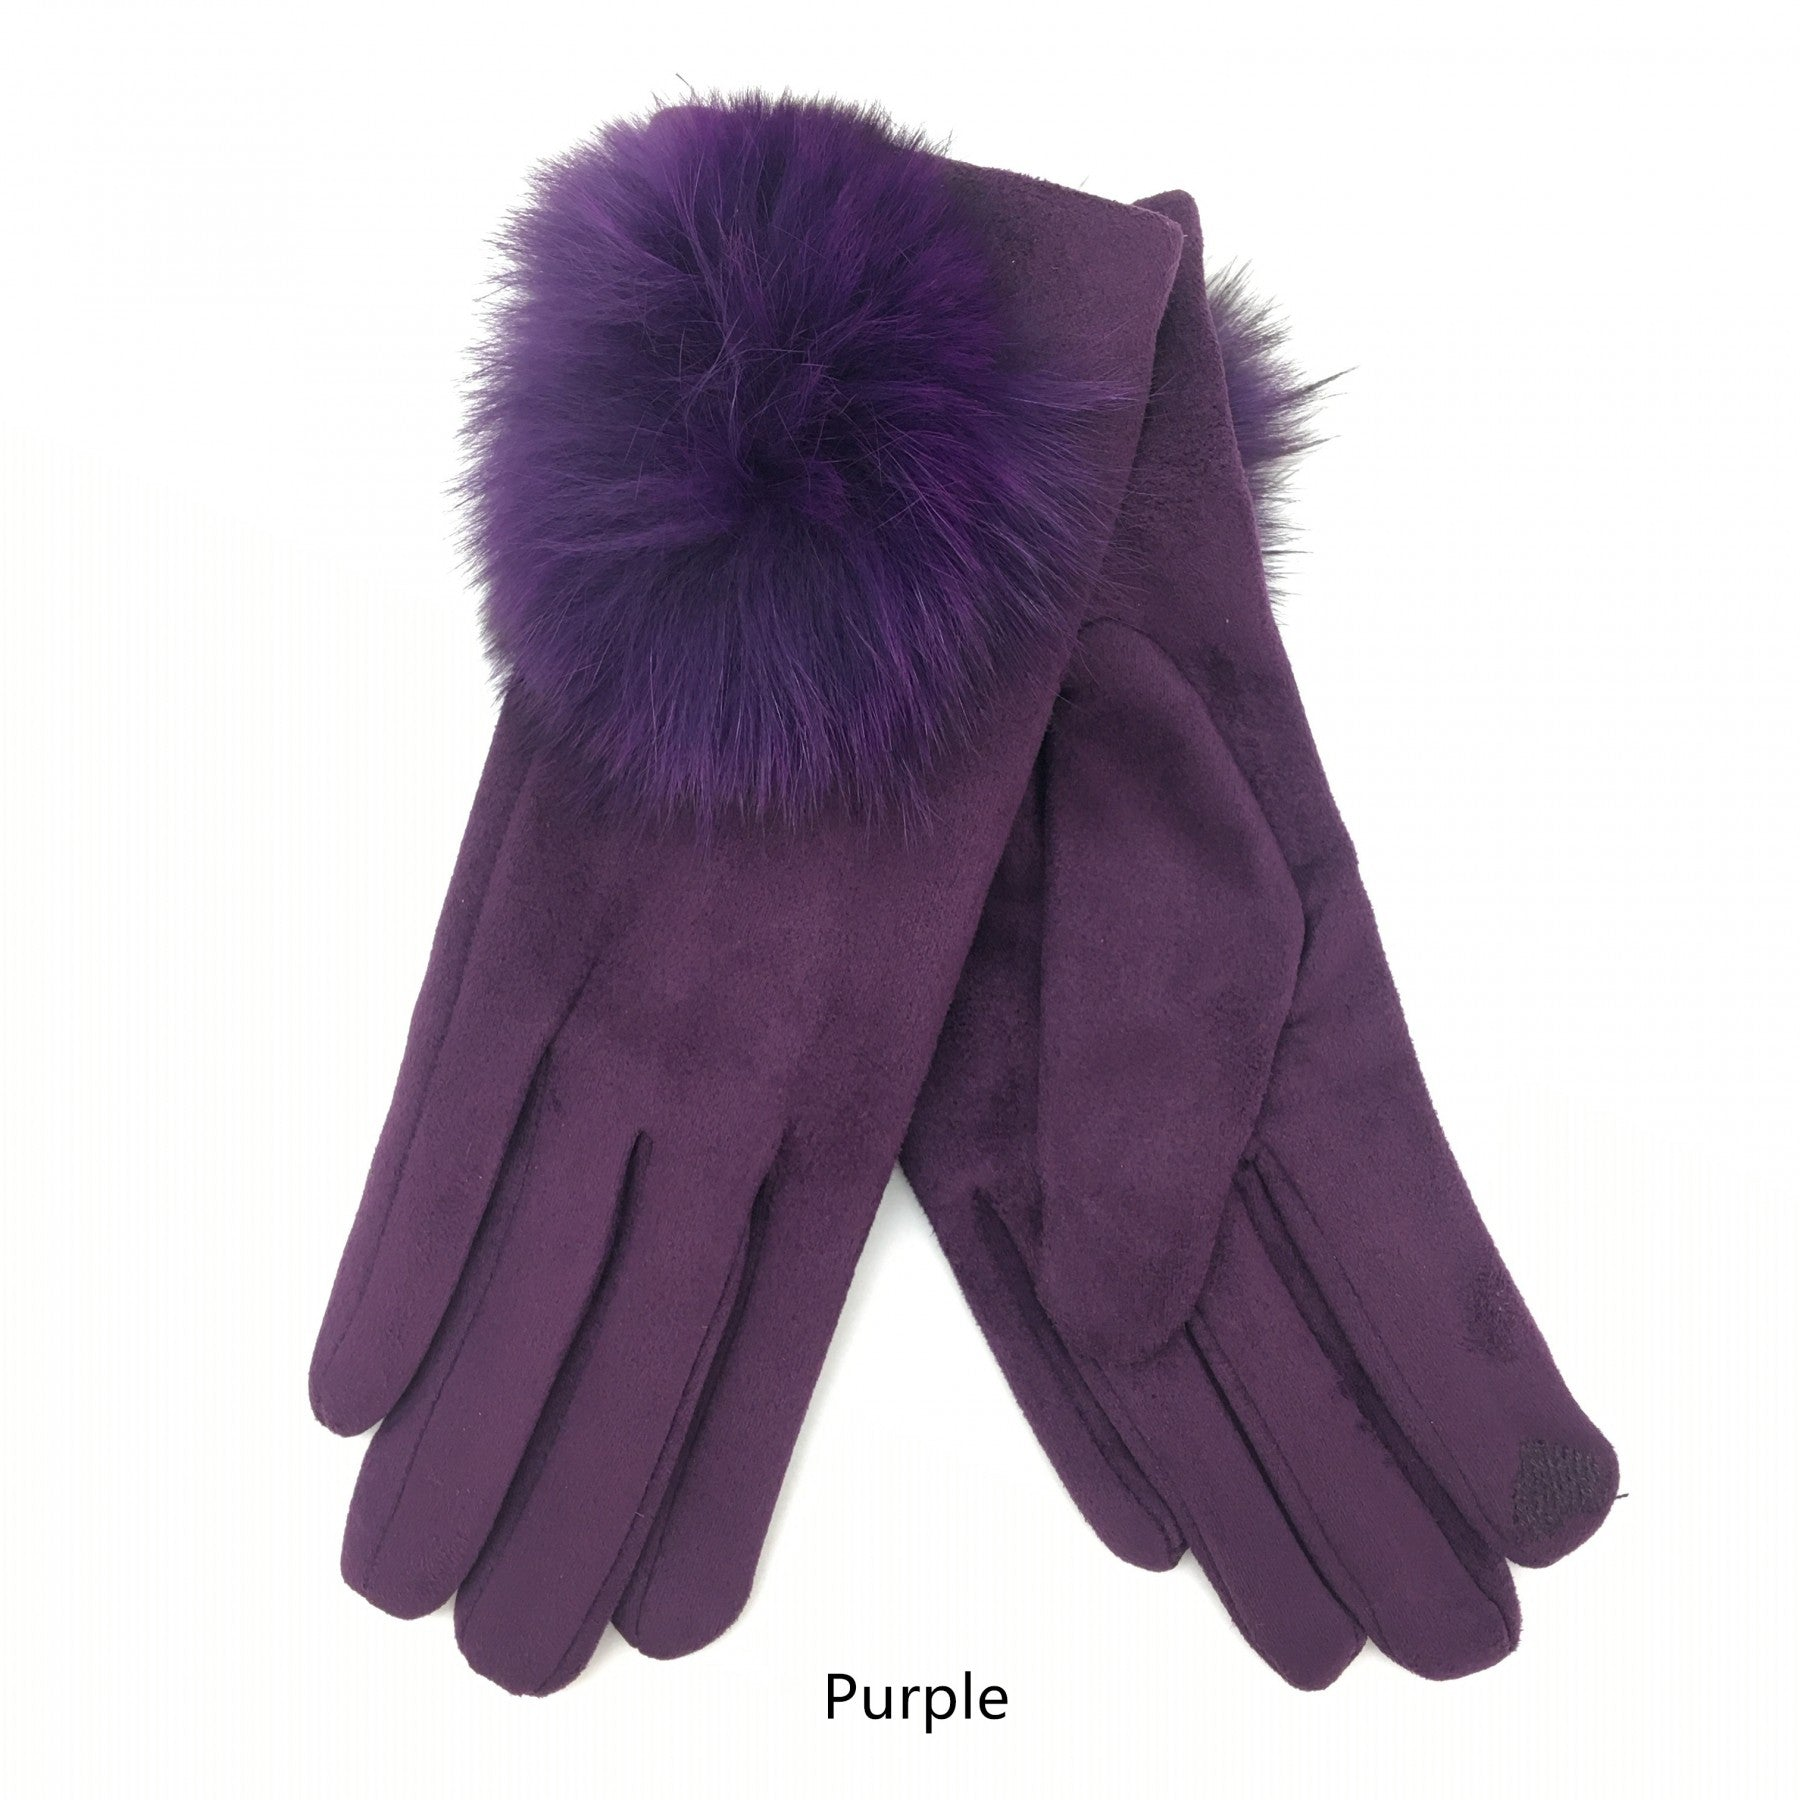 Purple pom pom gloves